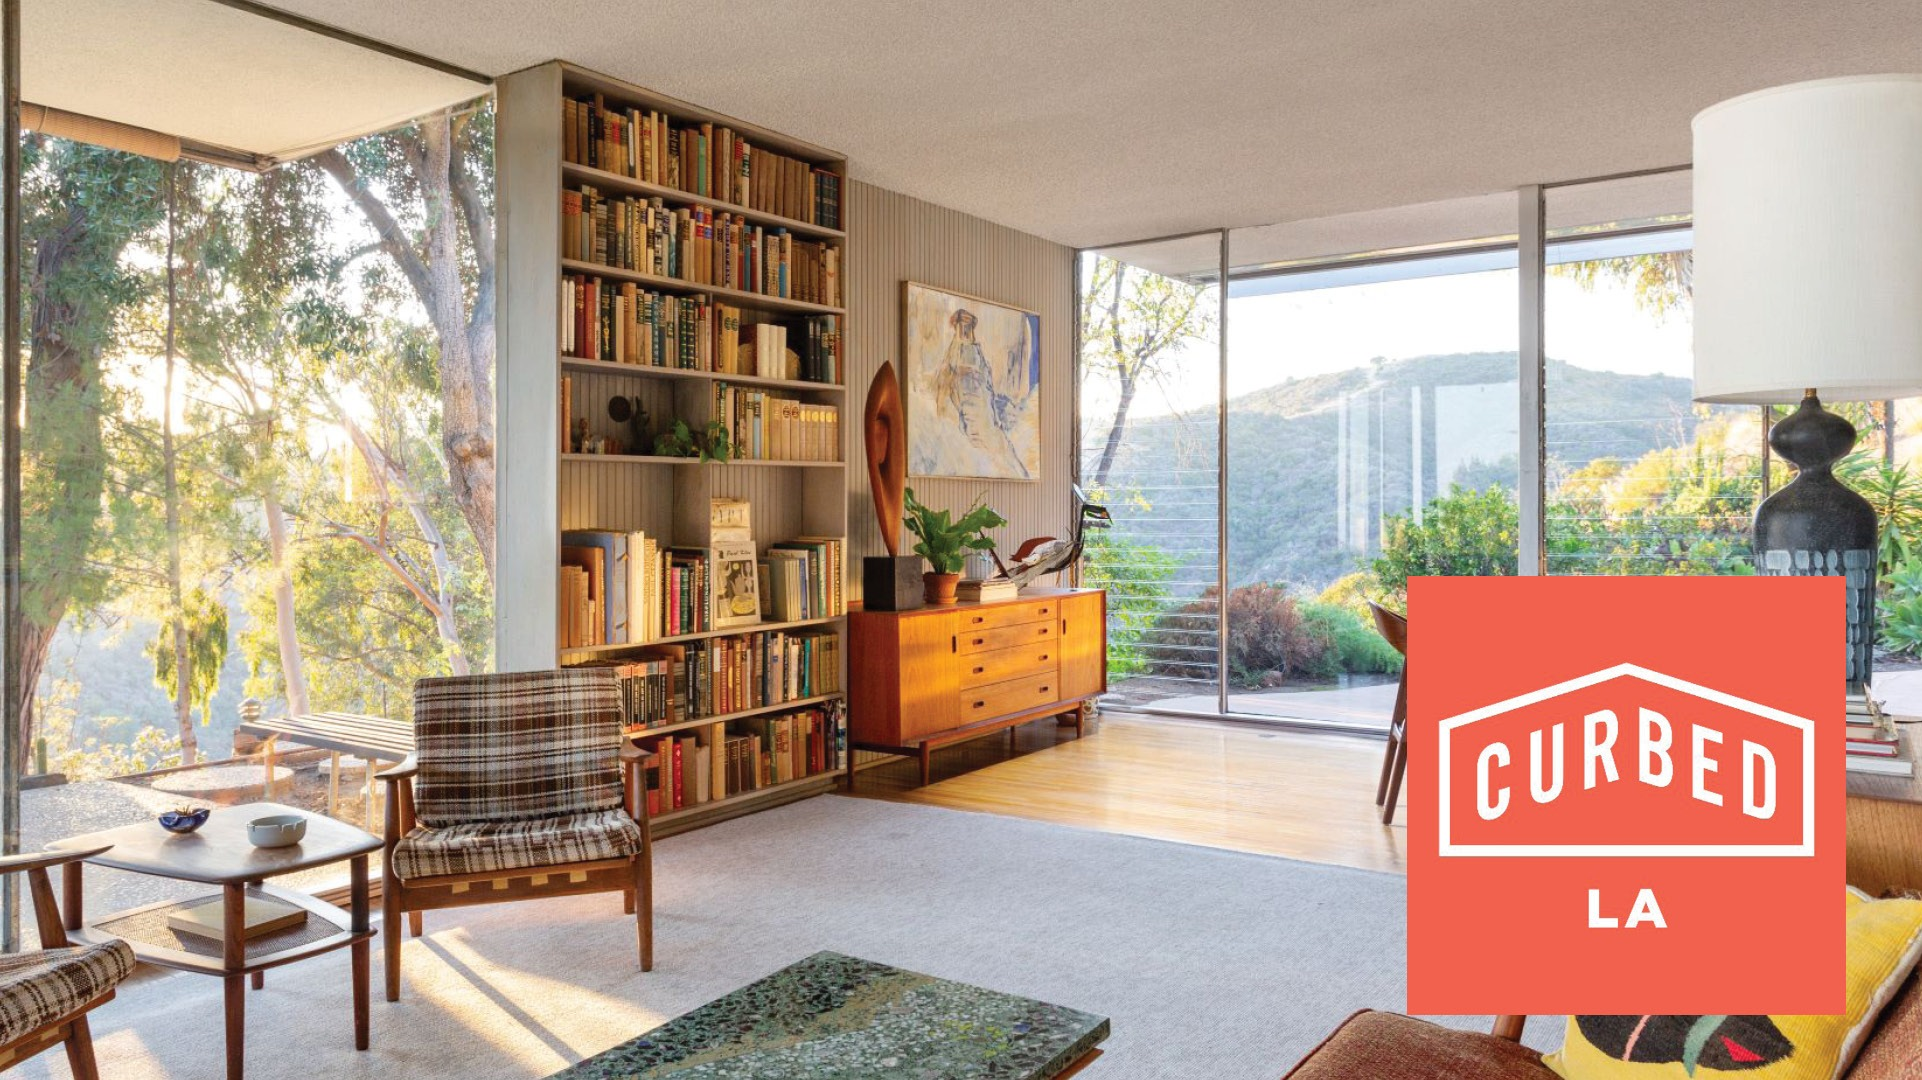 LA's most beautiful homes for sale in 2018